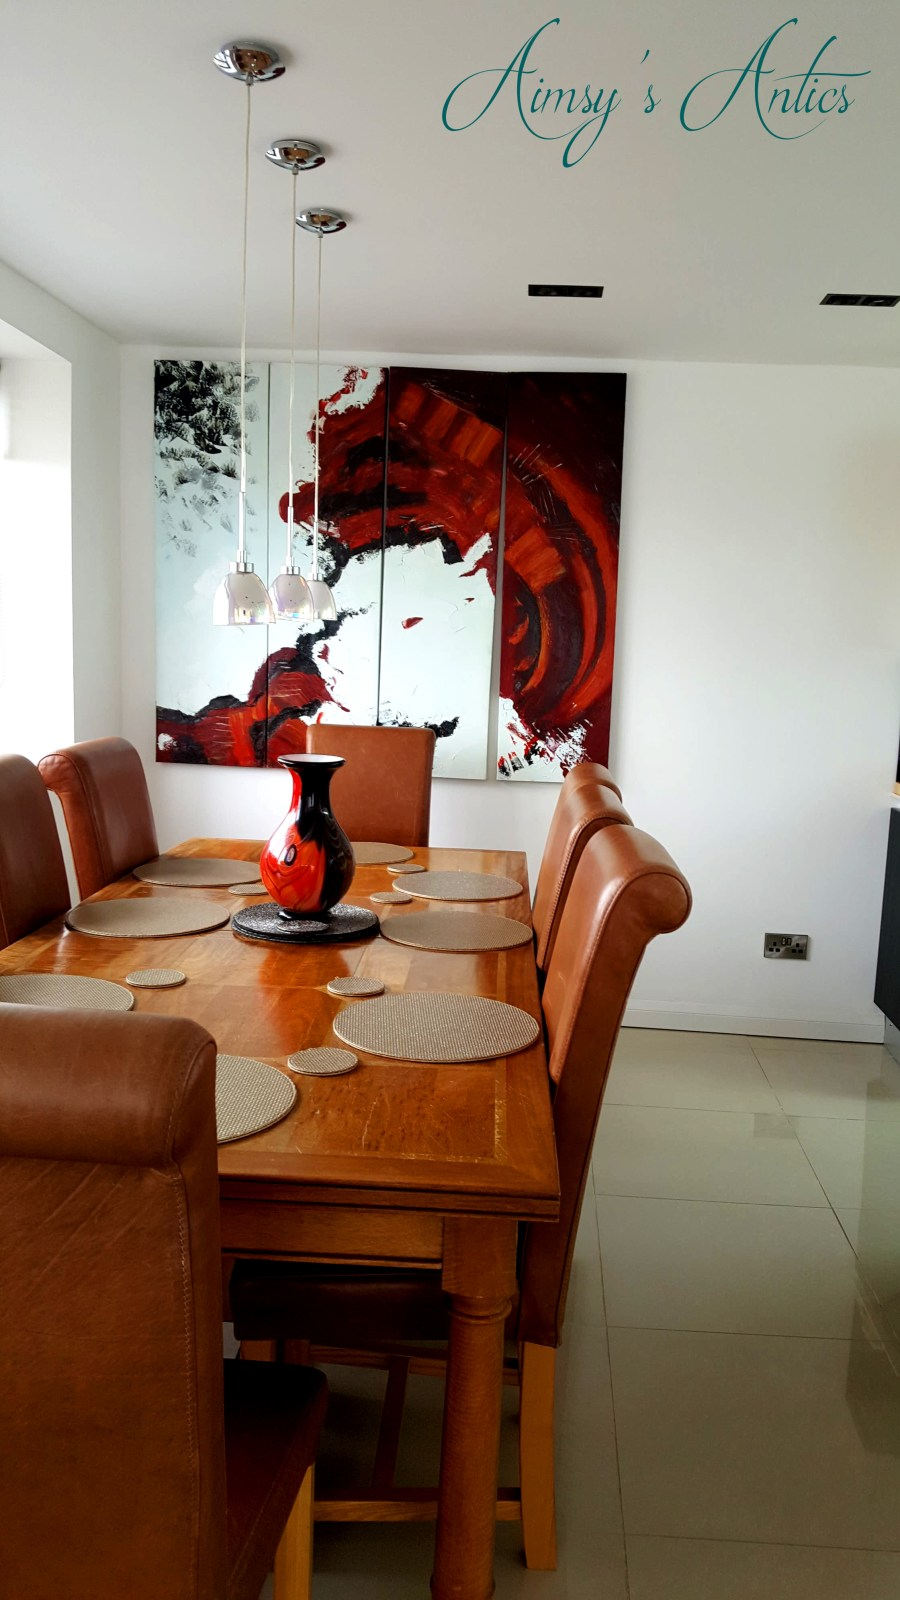 Image of a dining table with gold placemats and red, white and black artwork on the wall in the High -end bechside house